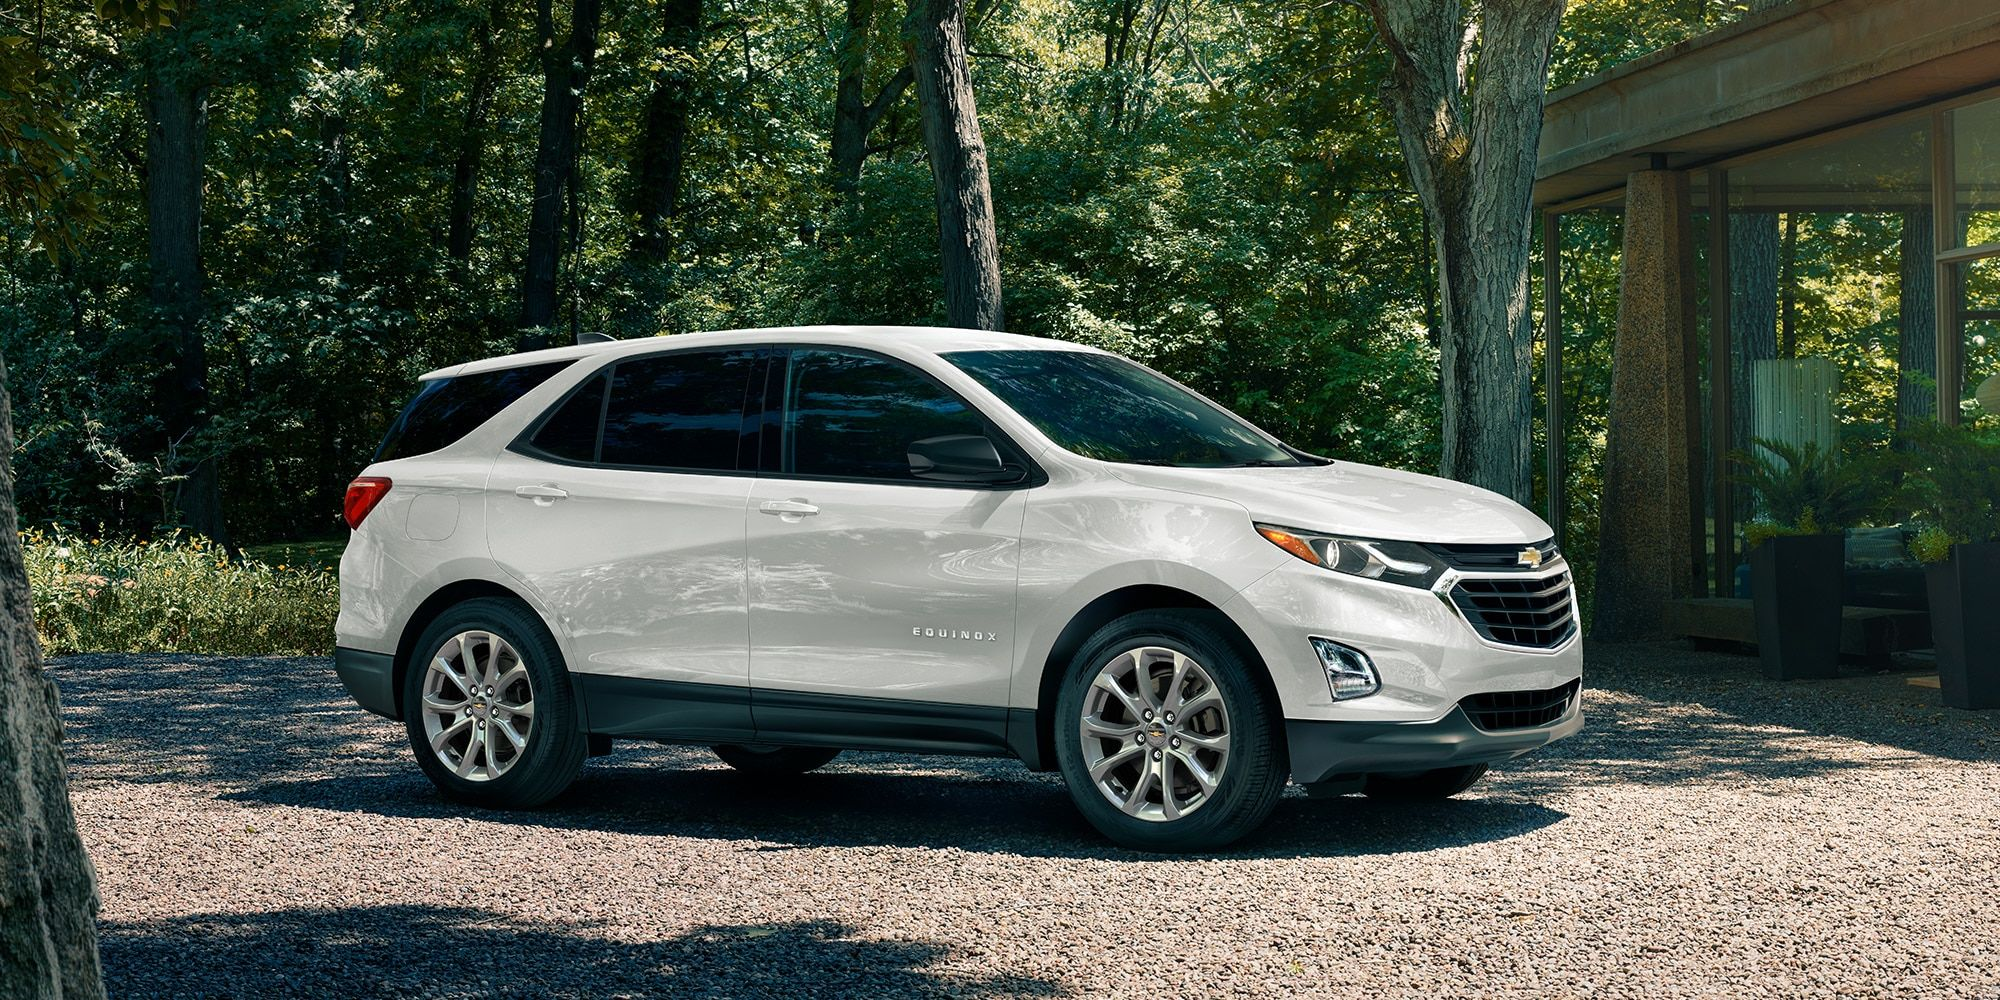 2020 Chevrolet Equinox Safety Features